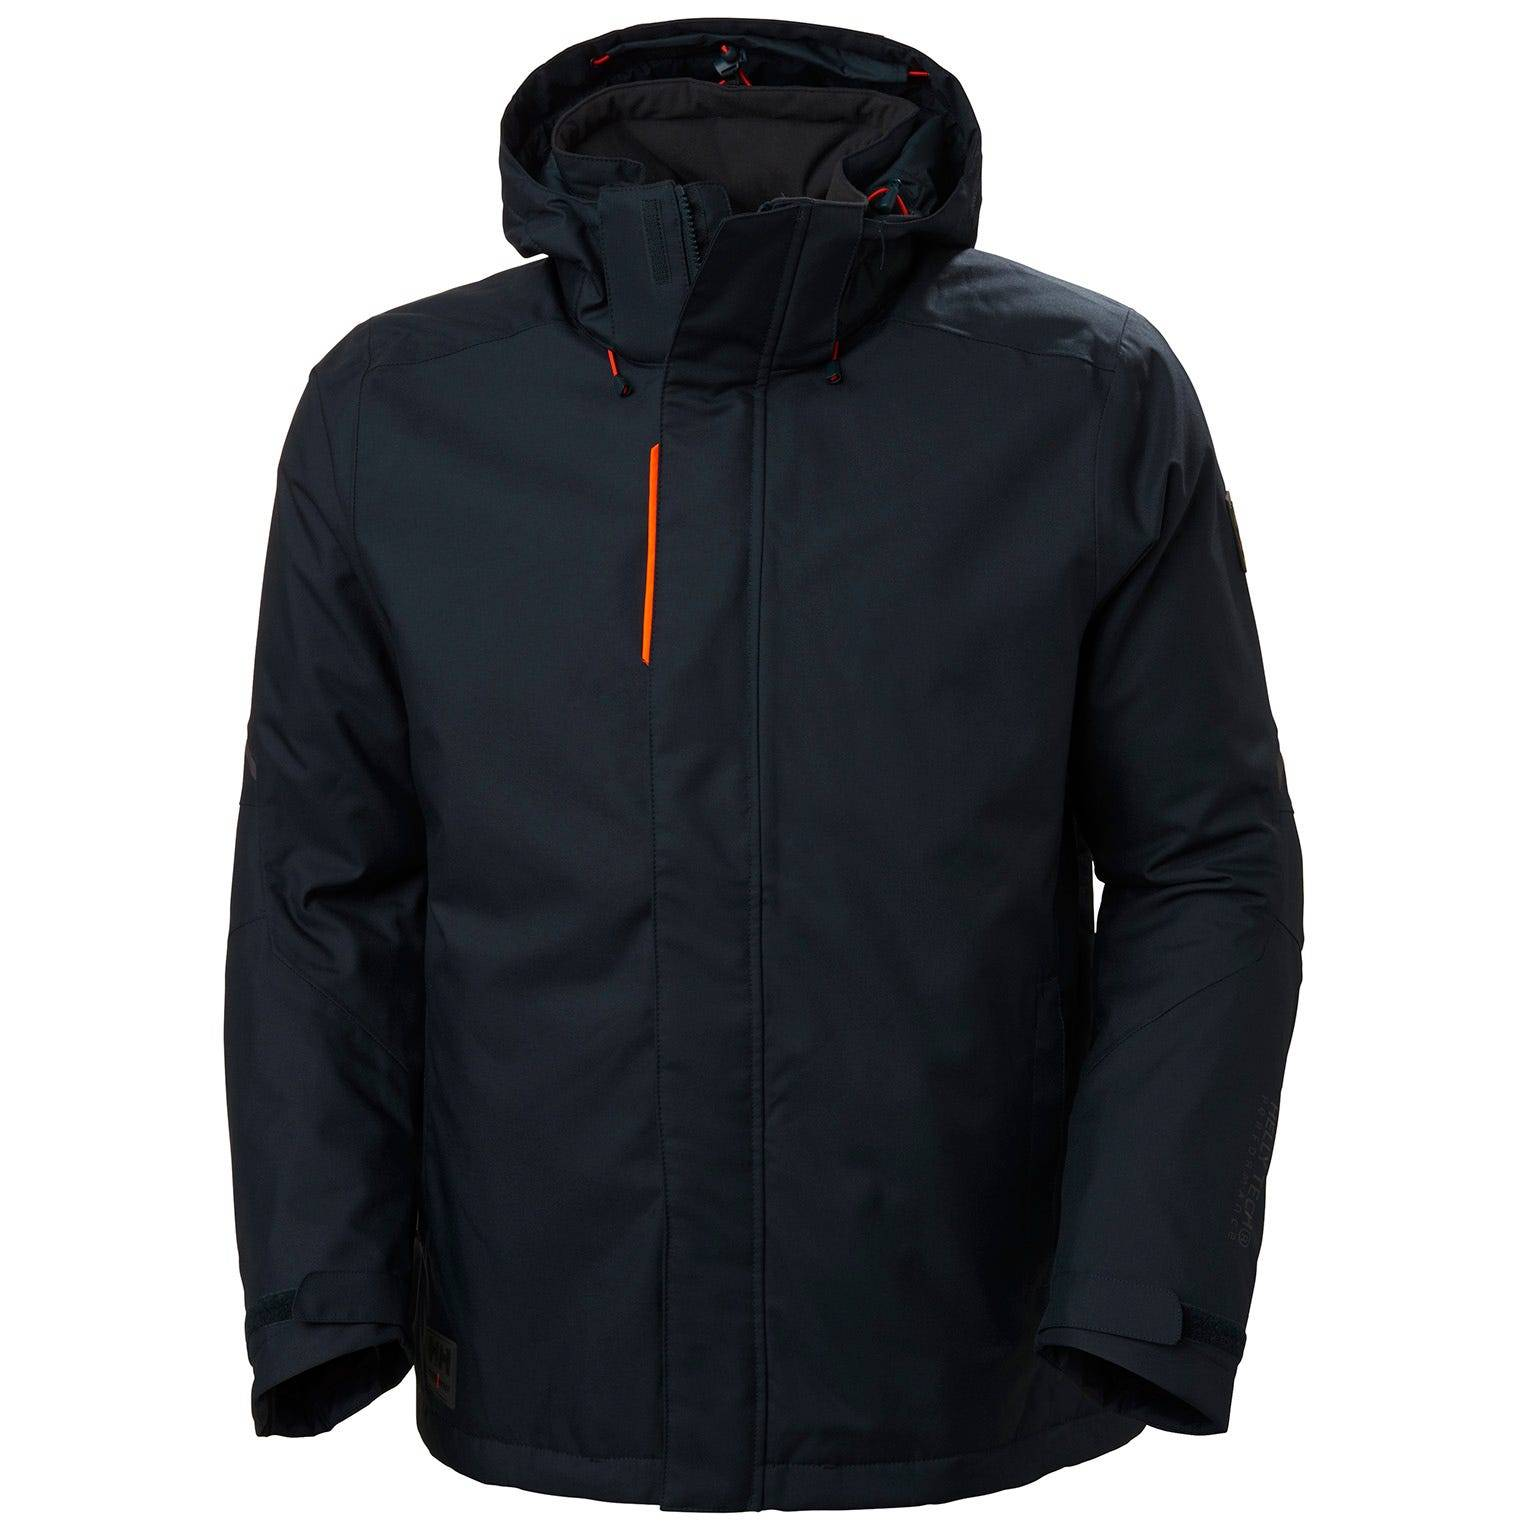 HH Workwear Workwear Helly Hansen Kensington Insulated Giacca Invernale XL Navy